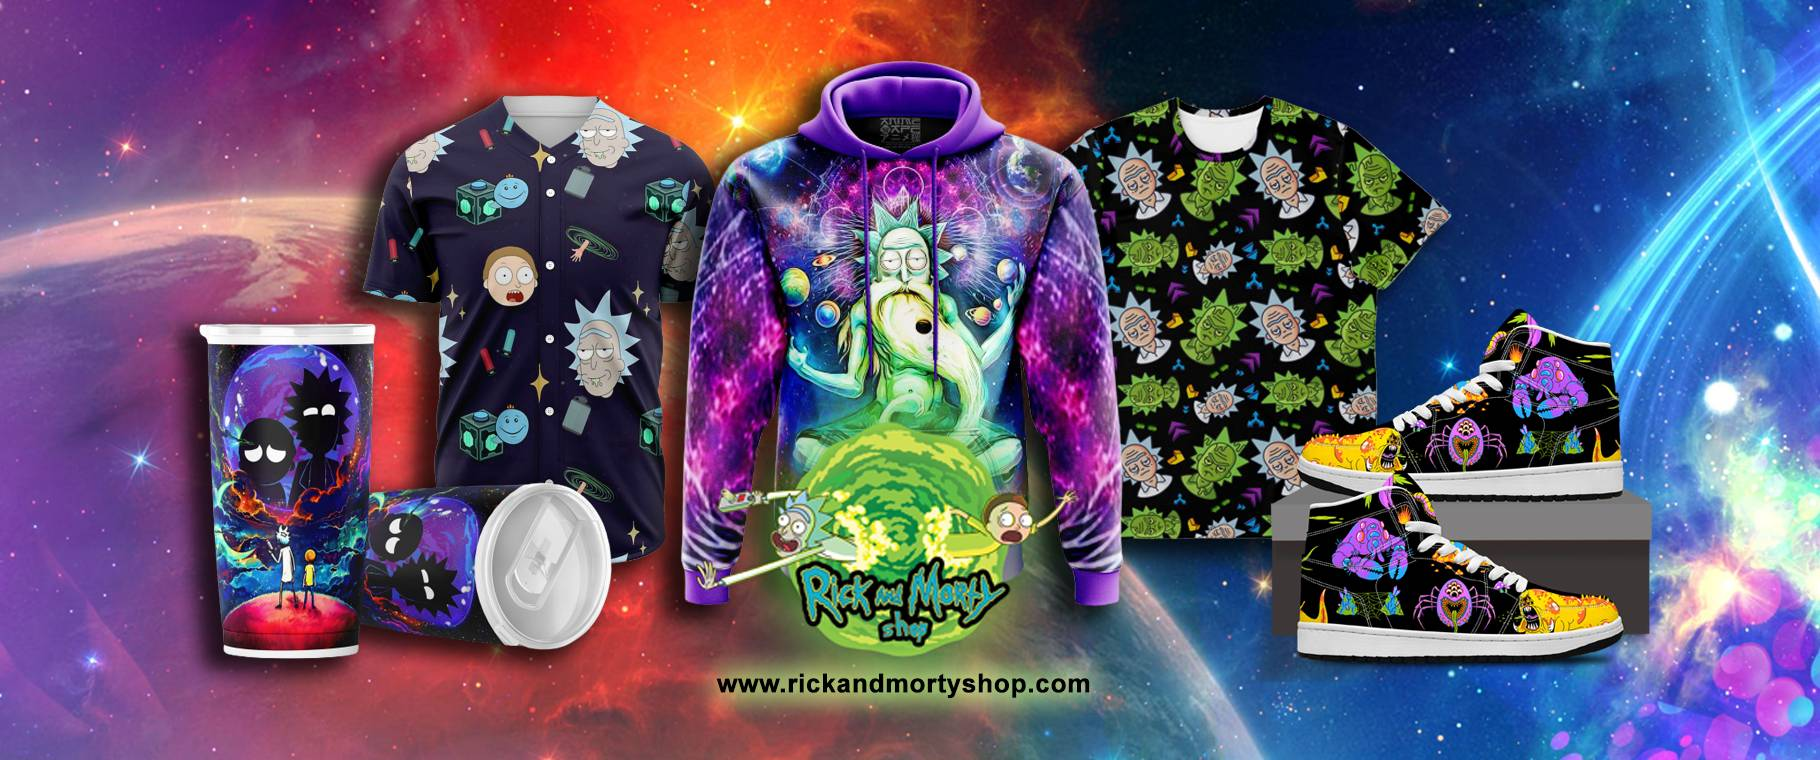 rick and morty shop banner - Rick And Morty Shop